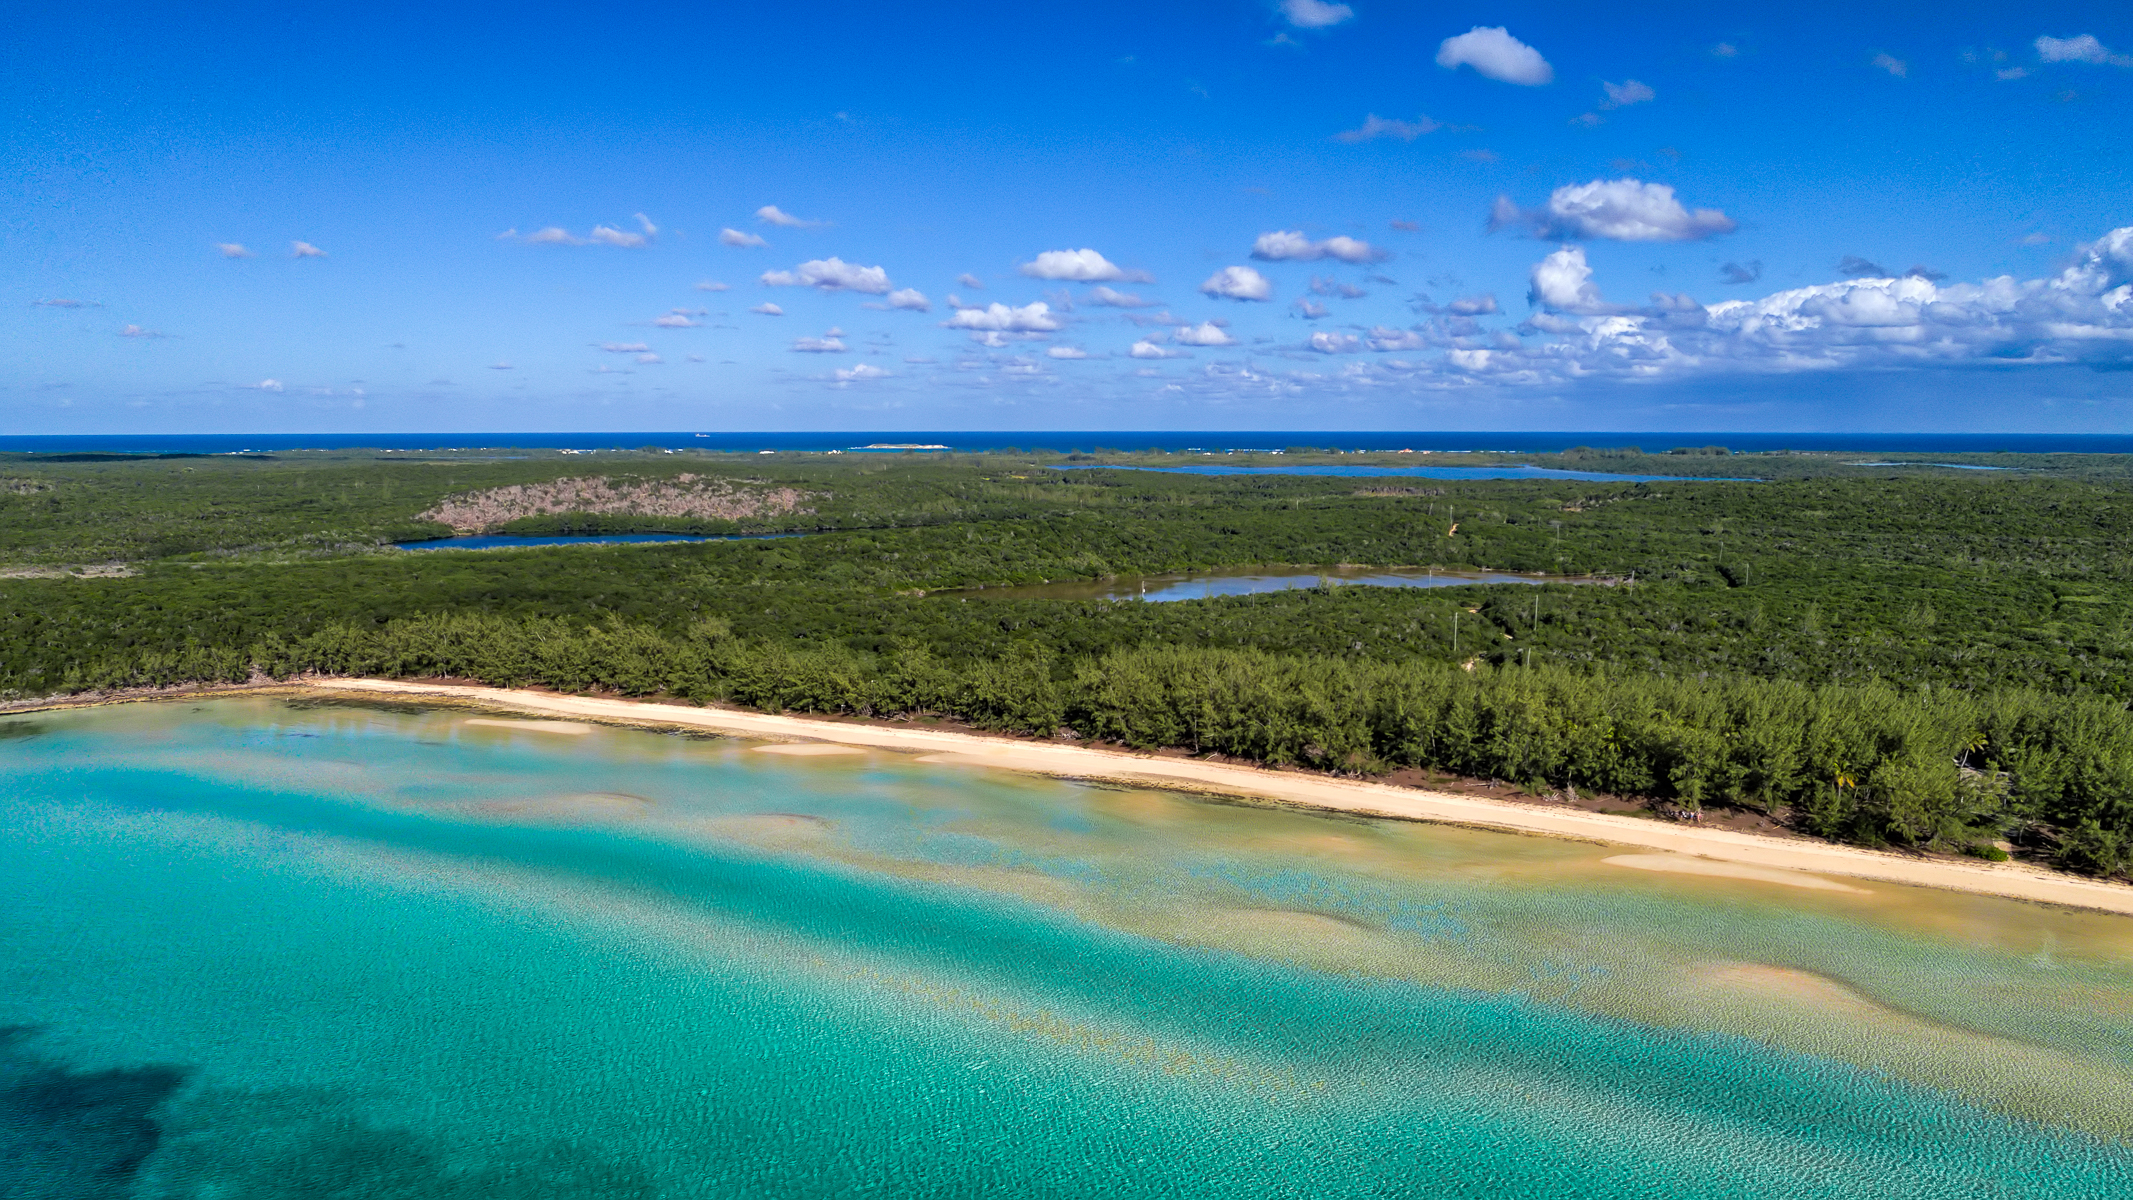 Additional photo for property listing at Development Acreage Ten Bay Paddlebaorders dream MLS 25104 Eleuthera, Bahamas